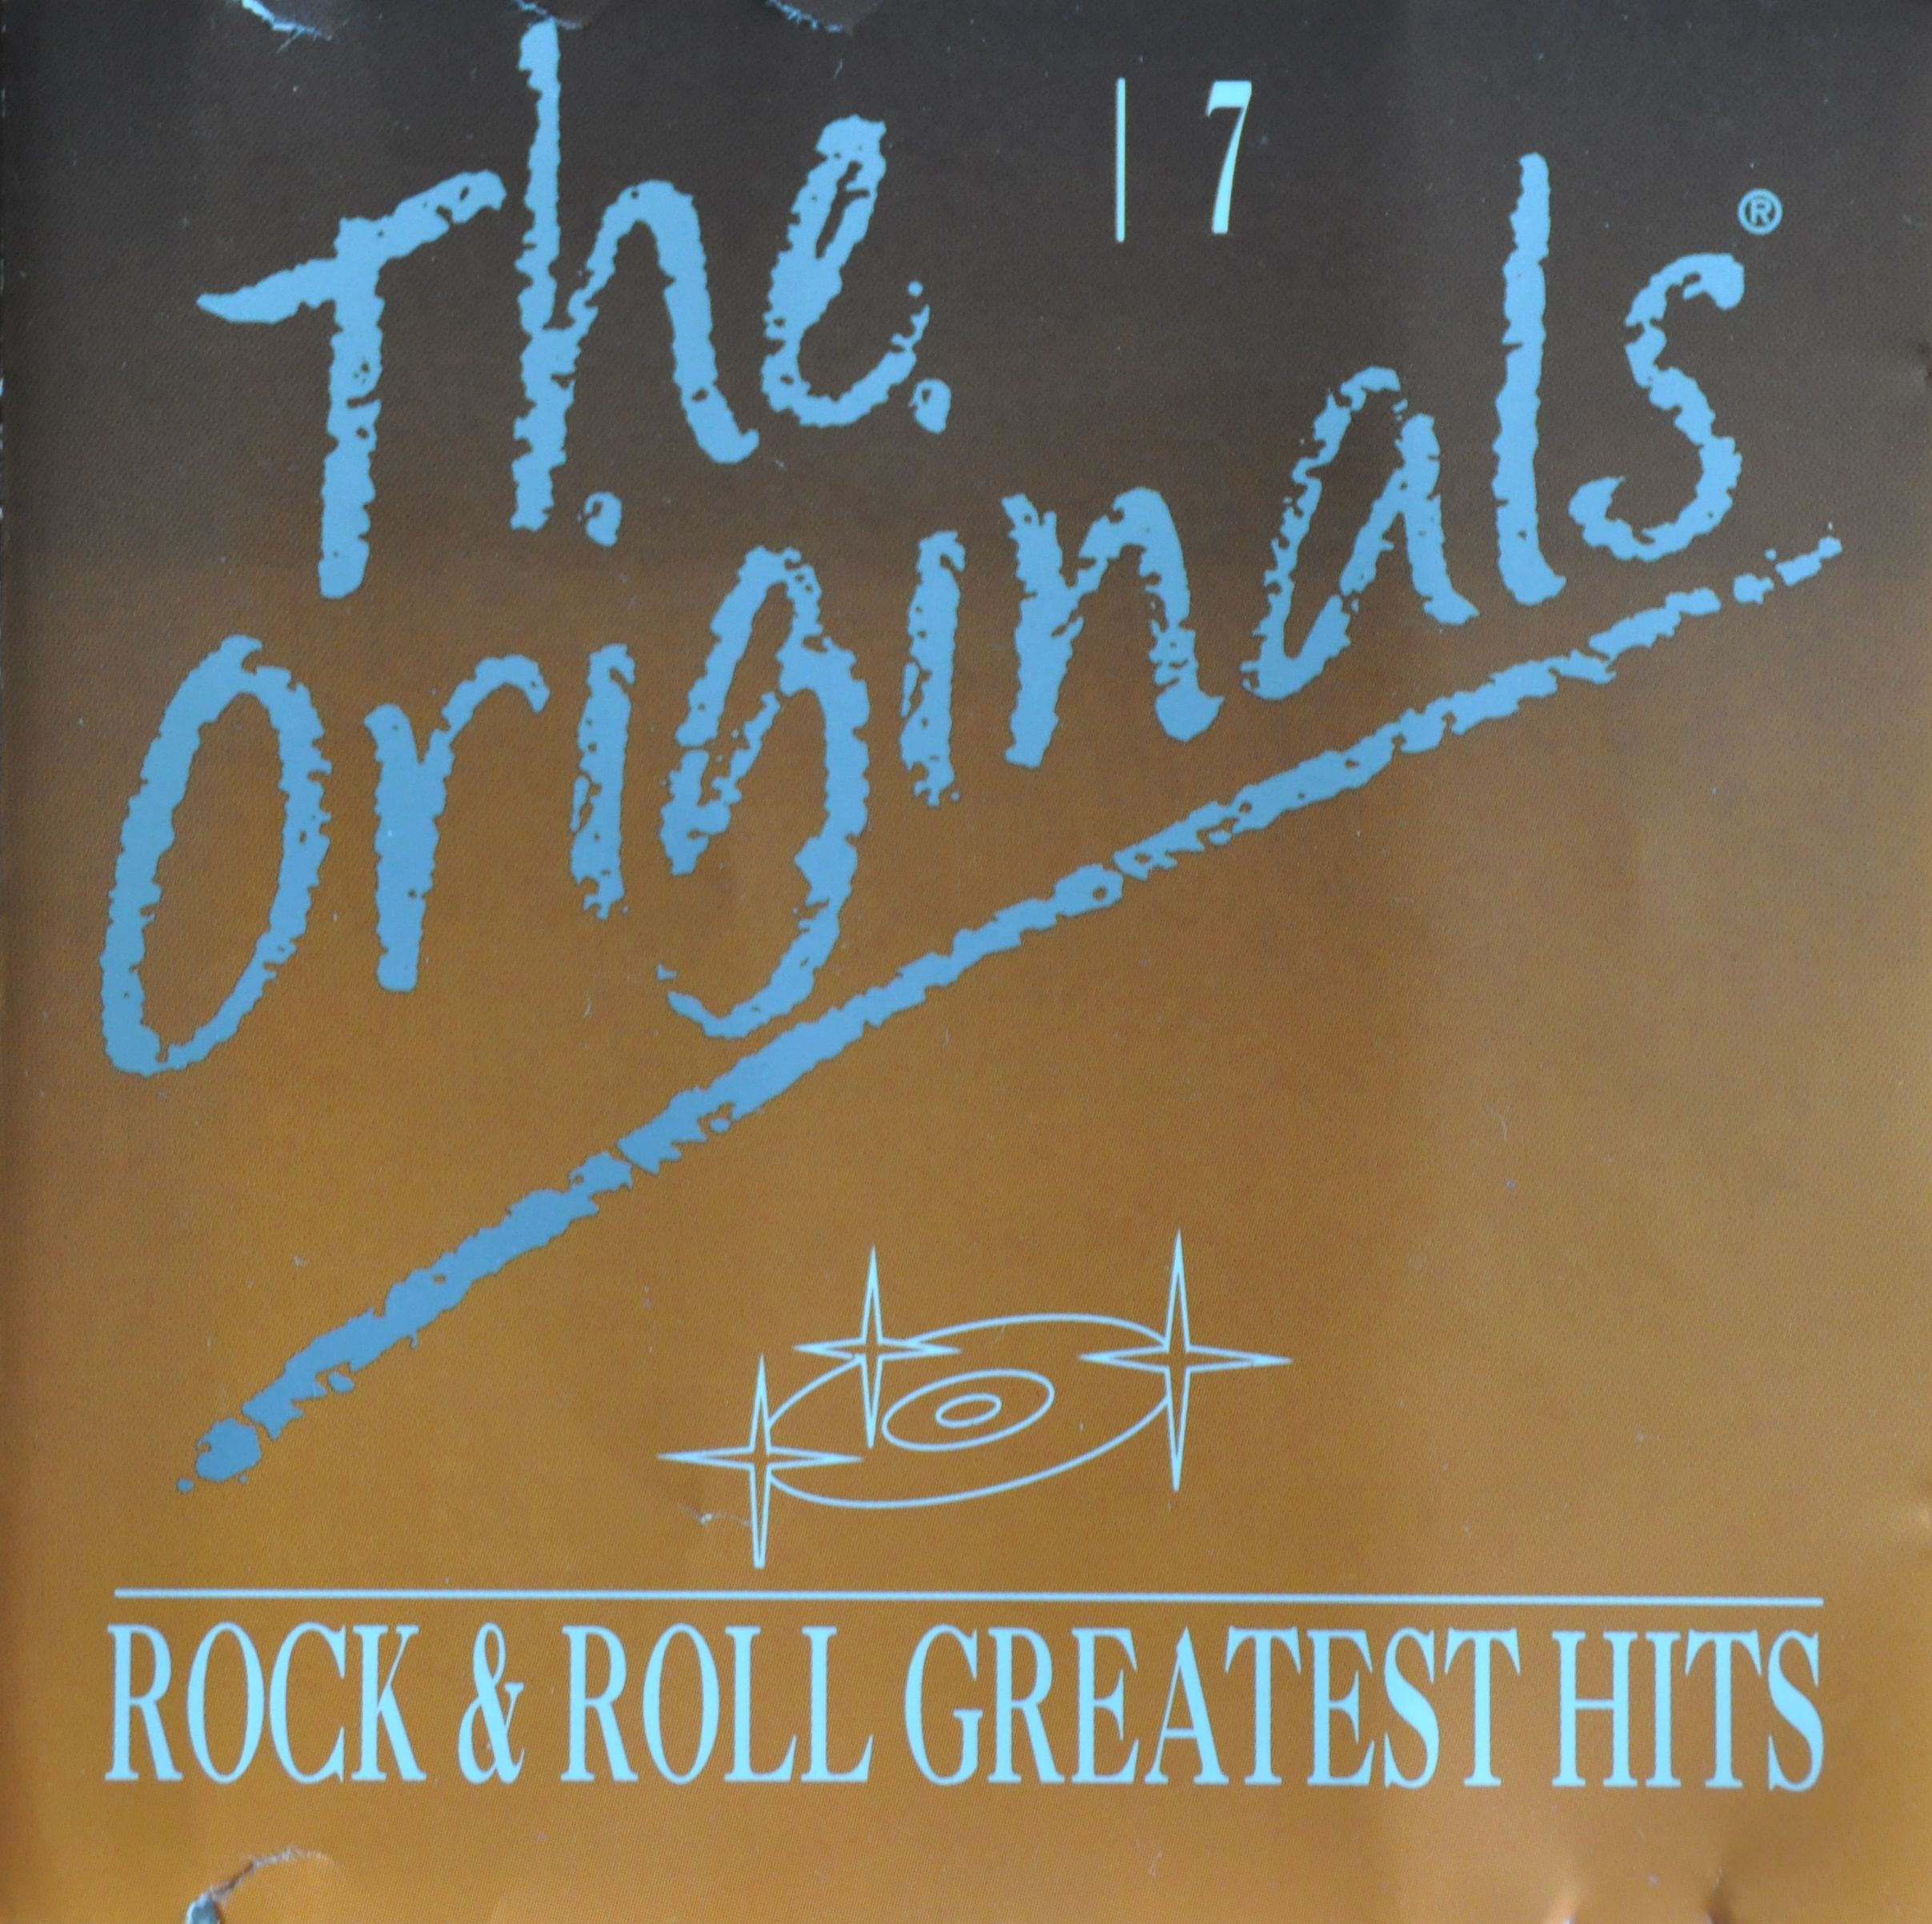 jaquettes2/The-Originals_07_Rock-and-Roll-Greatest-Hits.jpg